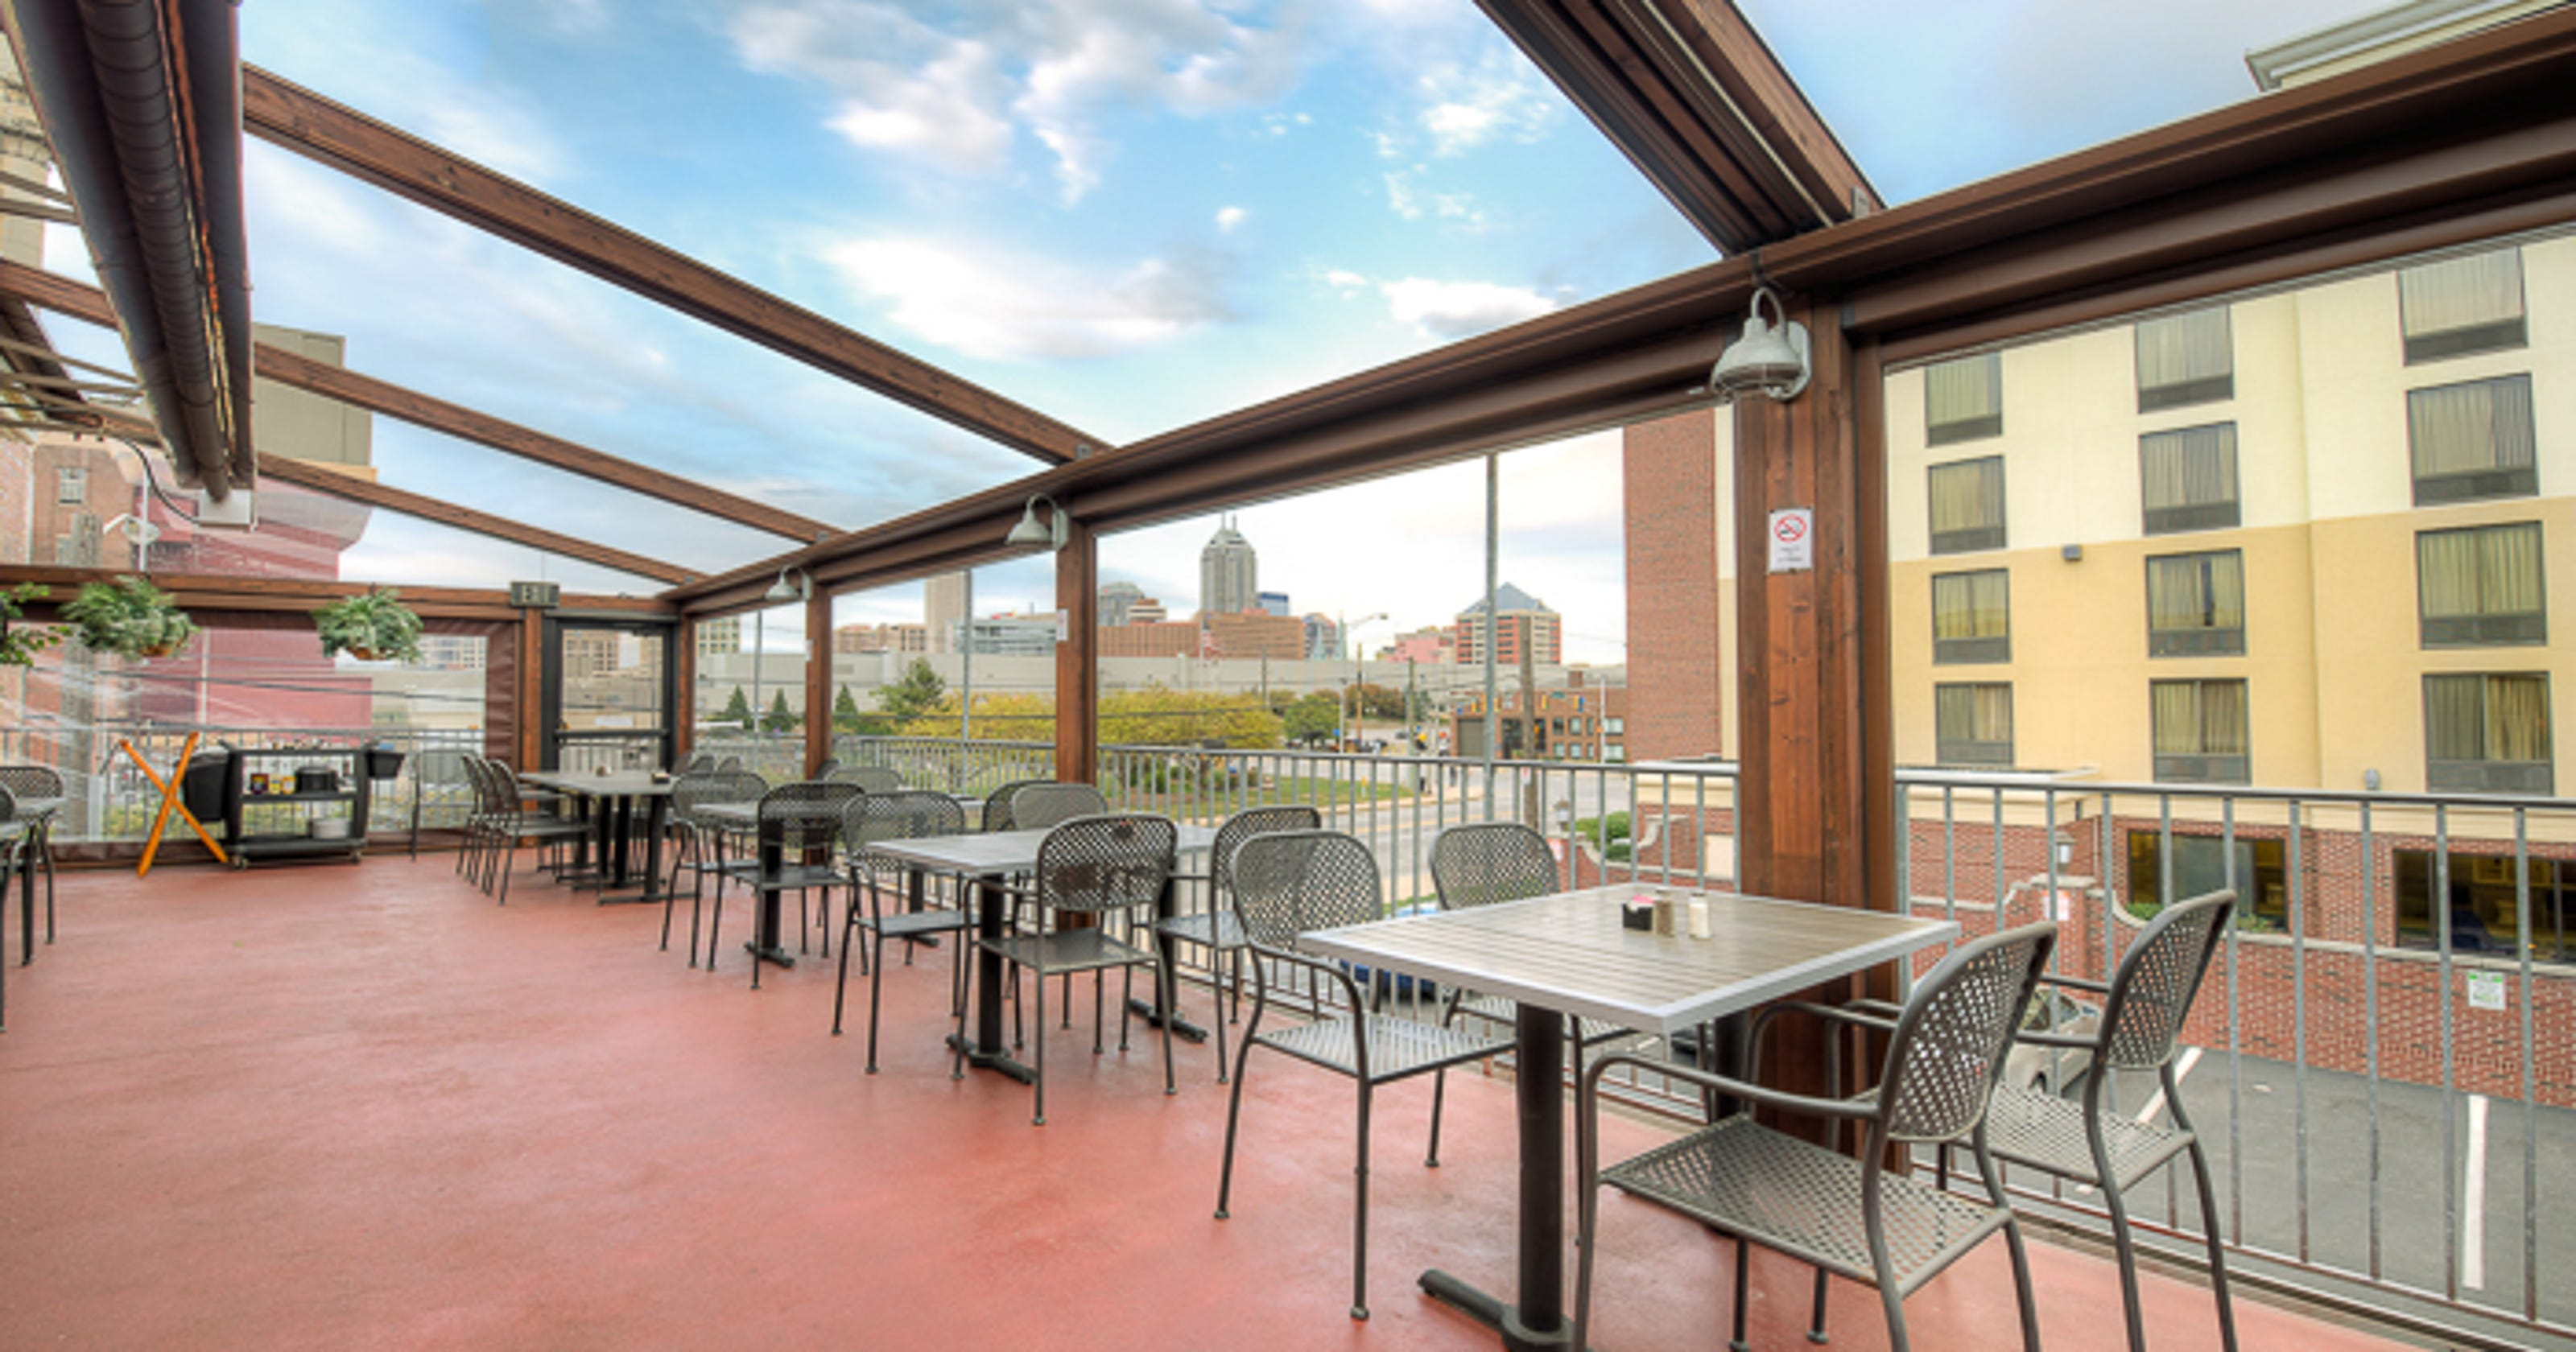 best downtown indianapolis restaurants with outdoor seating. Black Bedroom Furniture Sets. Home Design Ideas